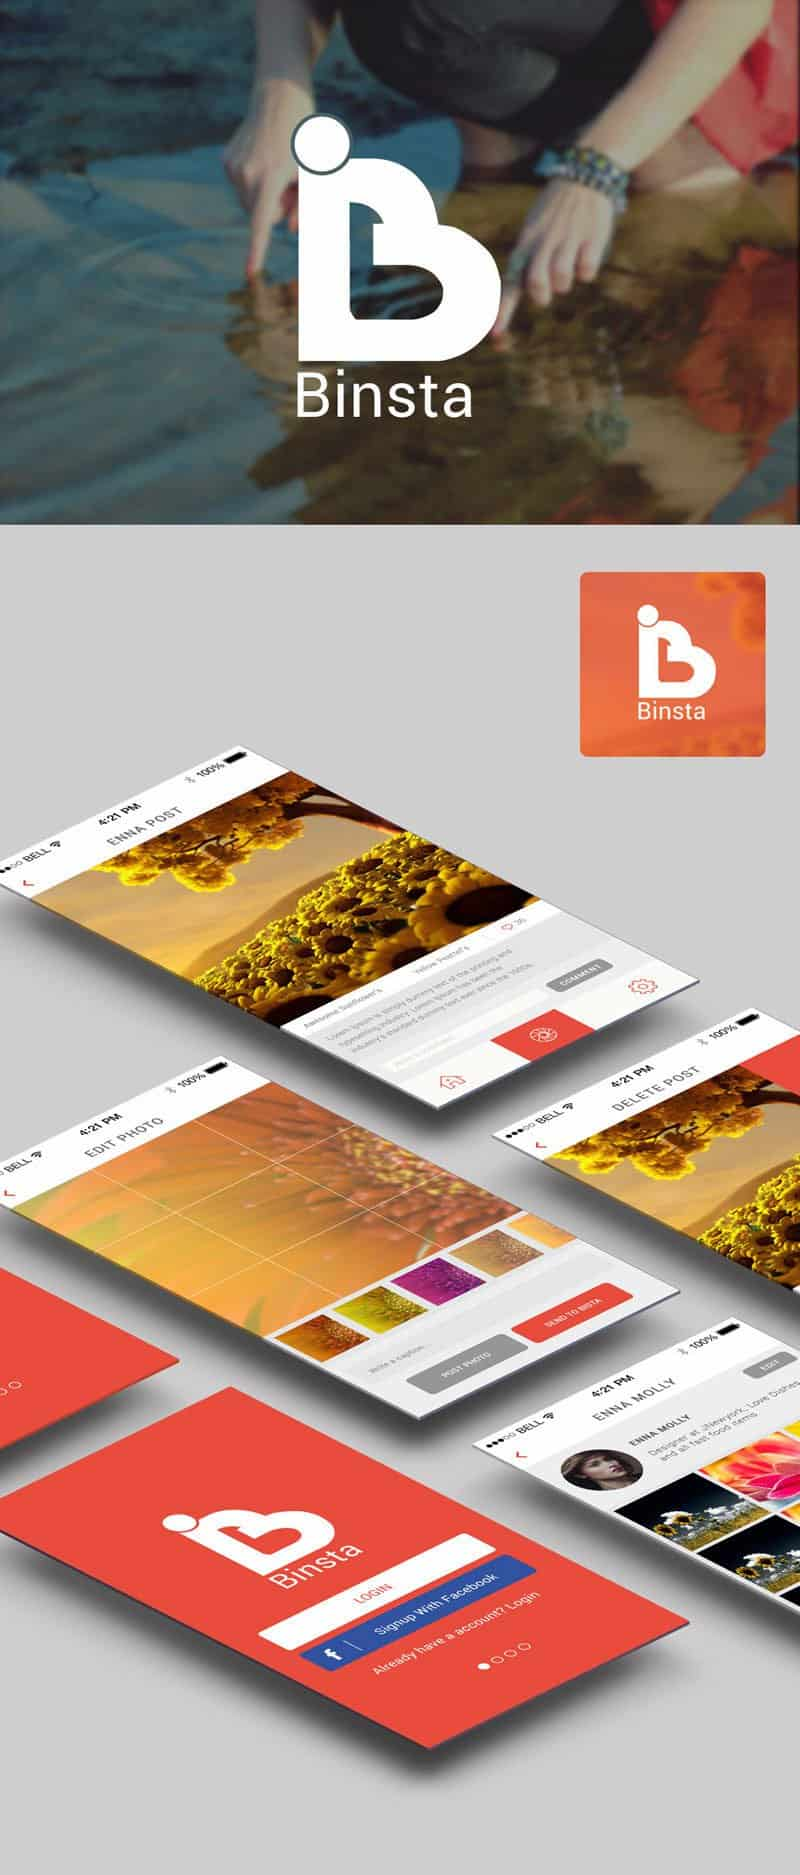 Free Binsta App UI PSD Interface Design